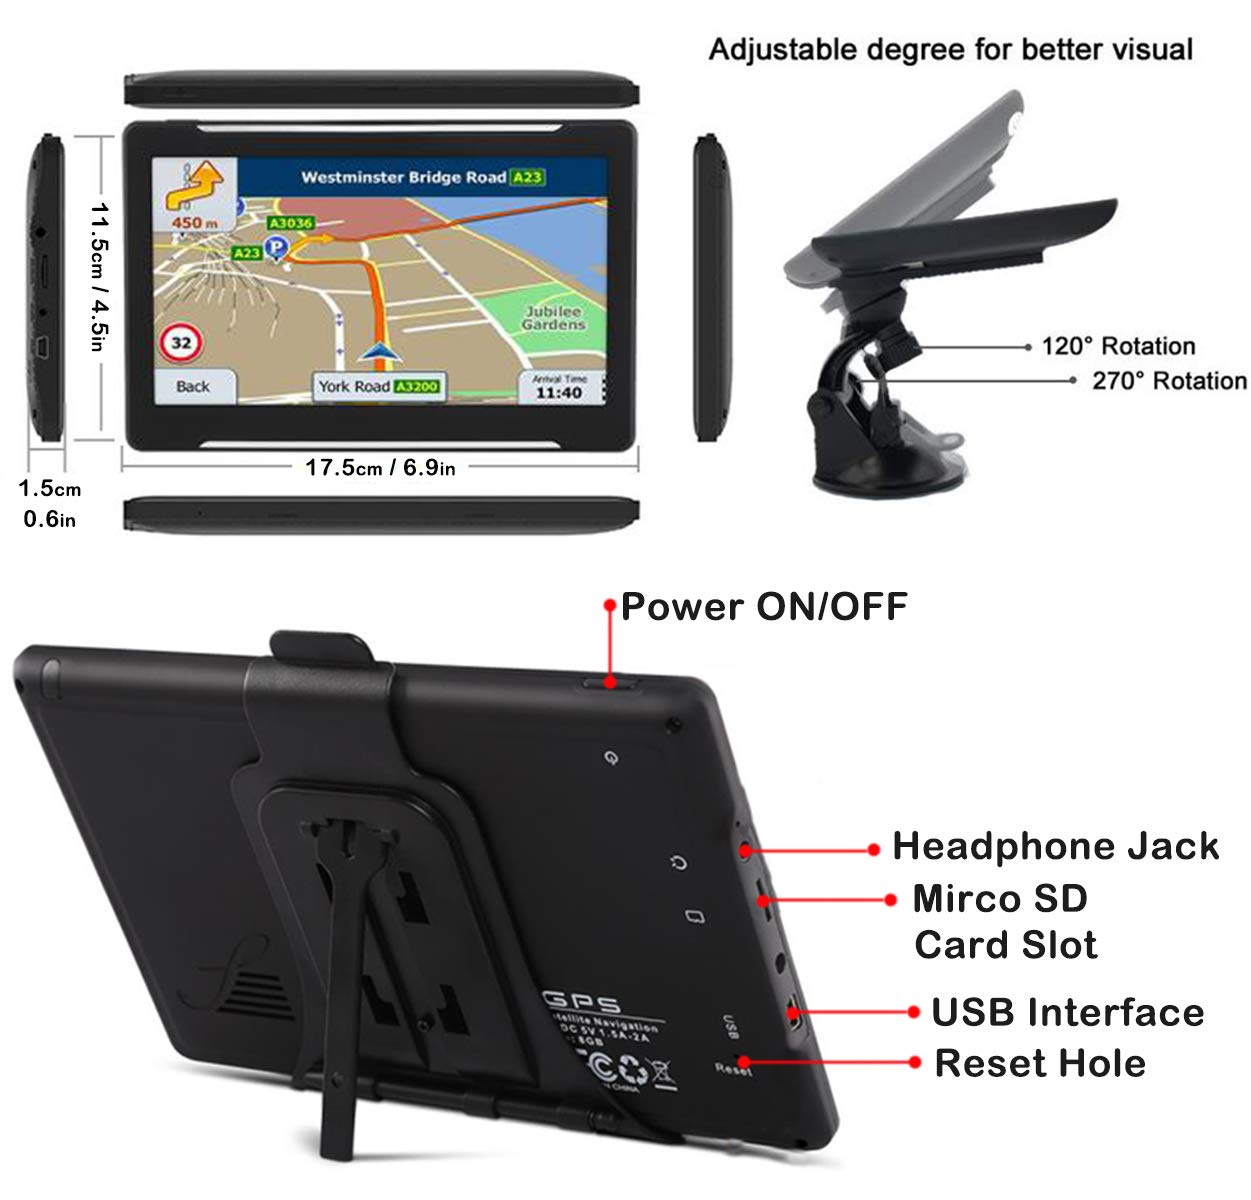 8G 256M GPS Navigation System with Postcodes Speed Camera Alerts POI Lane Assistance 7 Inch Touchscreen Sat Nav for Car Truck Preinstalled FREE Lifetime Updates Latest Maps for Europe 48 Countries